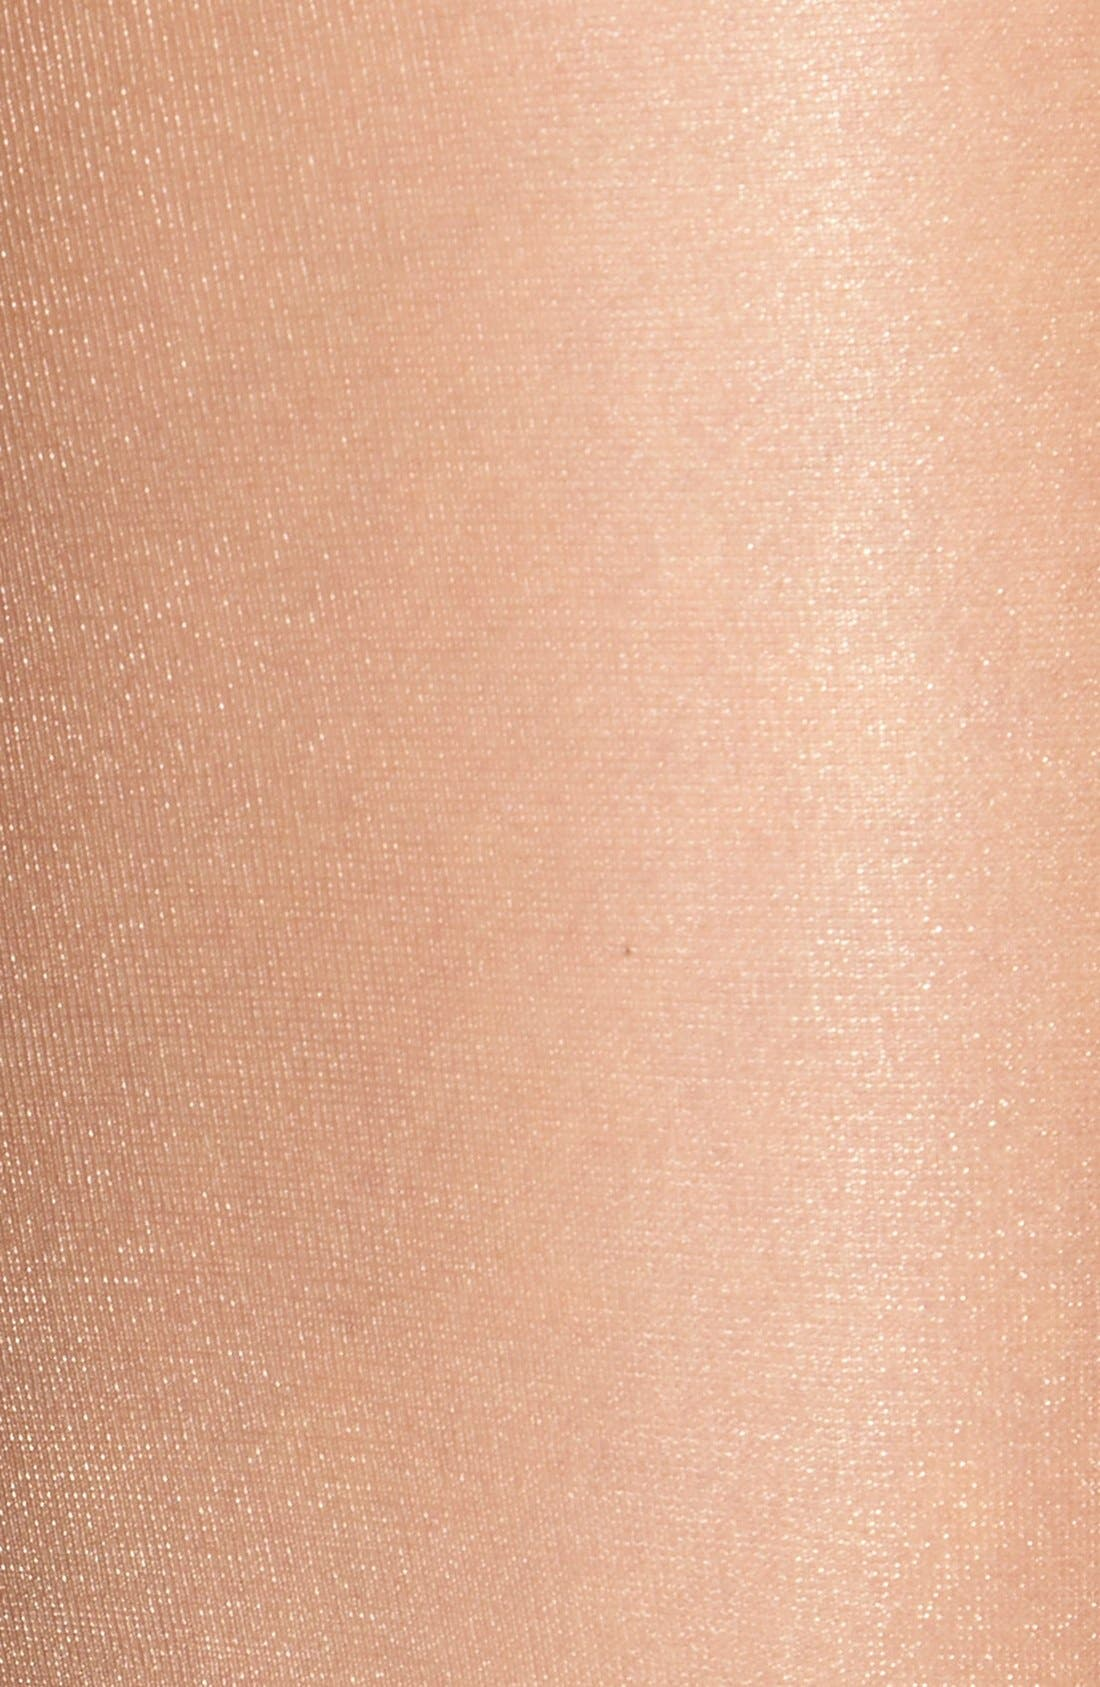 Shimmer Sheer Control Top Pantyhose,                             Alternate thumbnail 6, color,